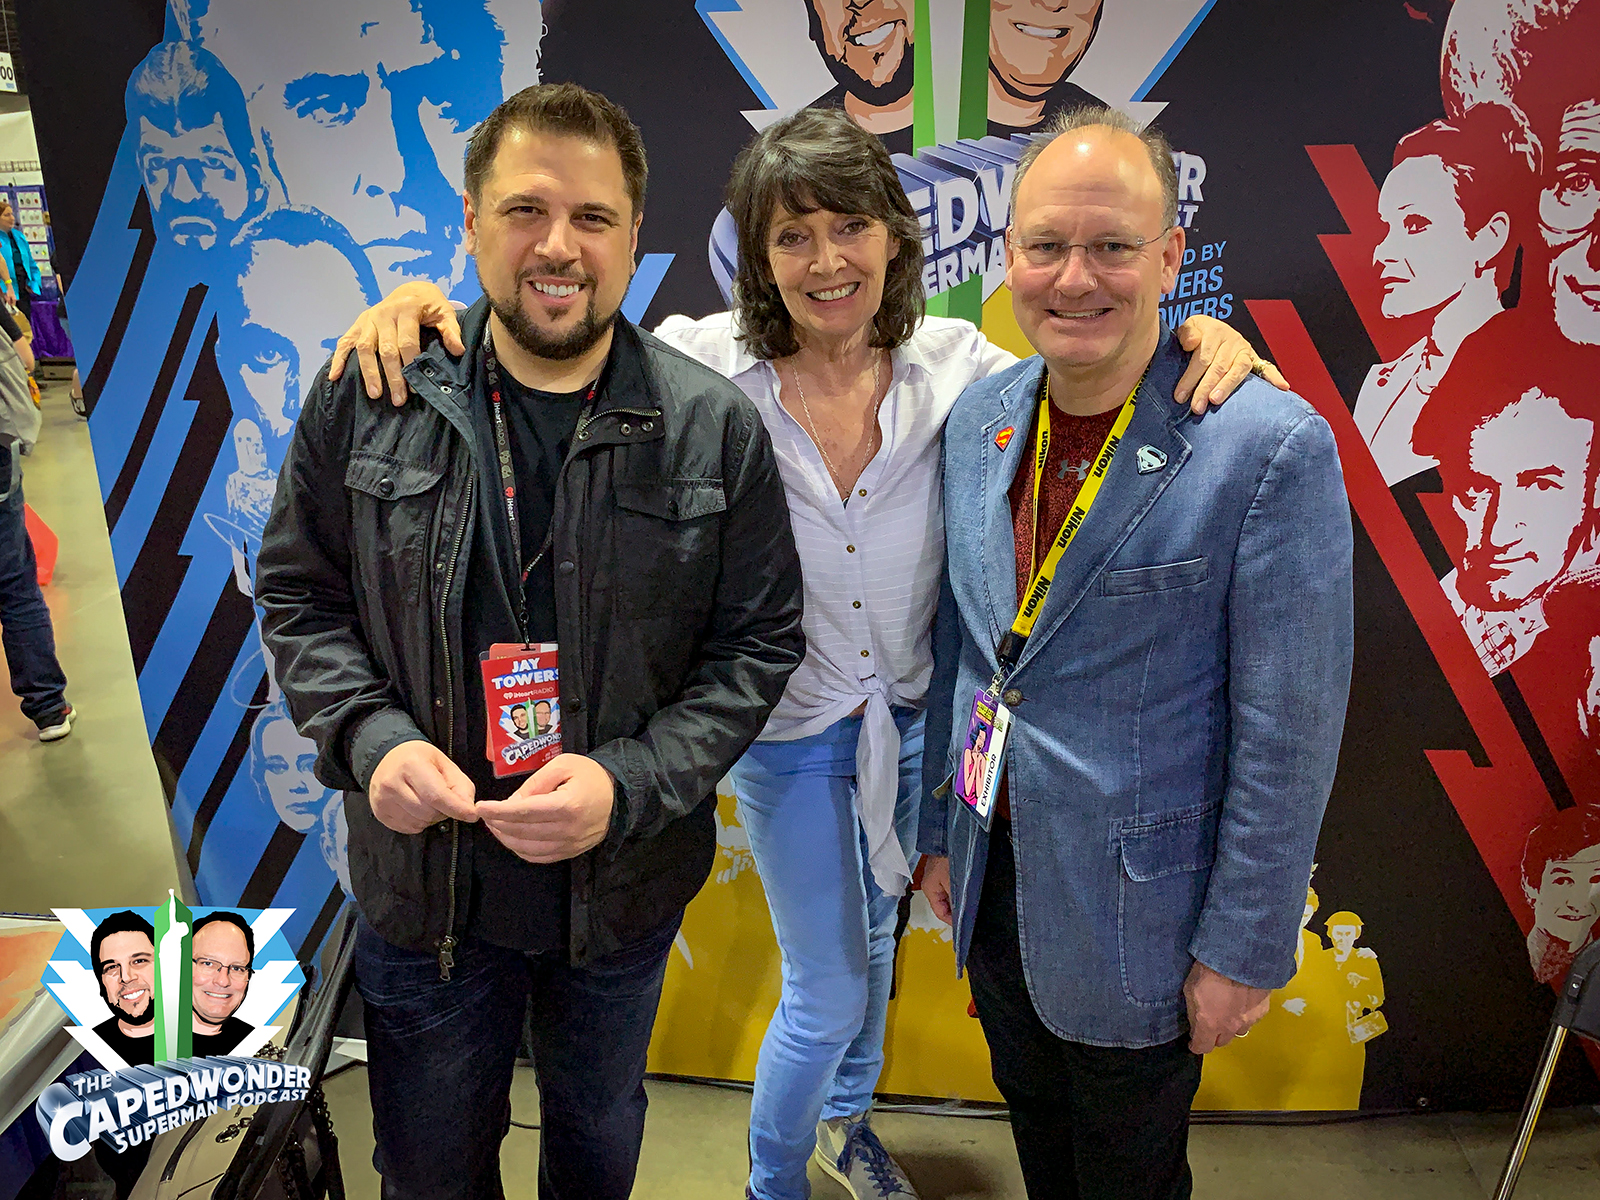 Jay Towers, Sarah Douglas and Jim Bowers at the 2019 Motor City Comic Con